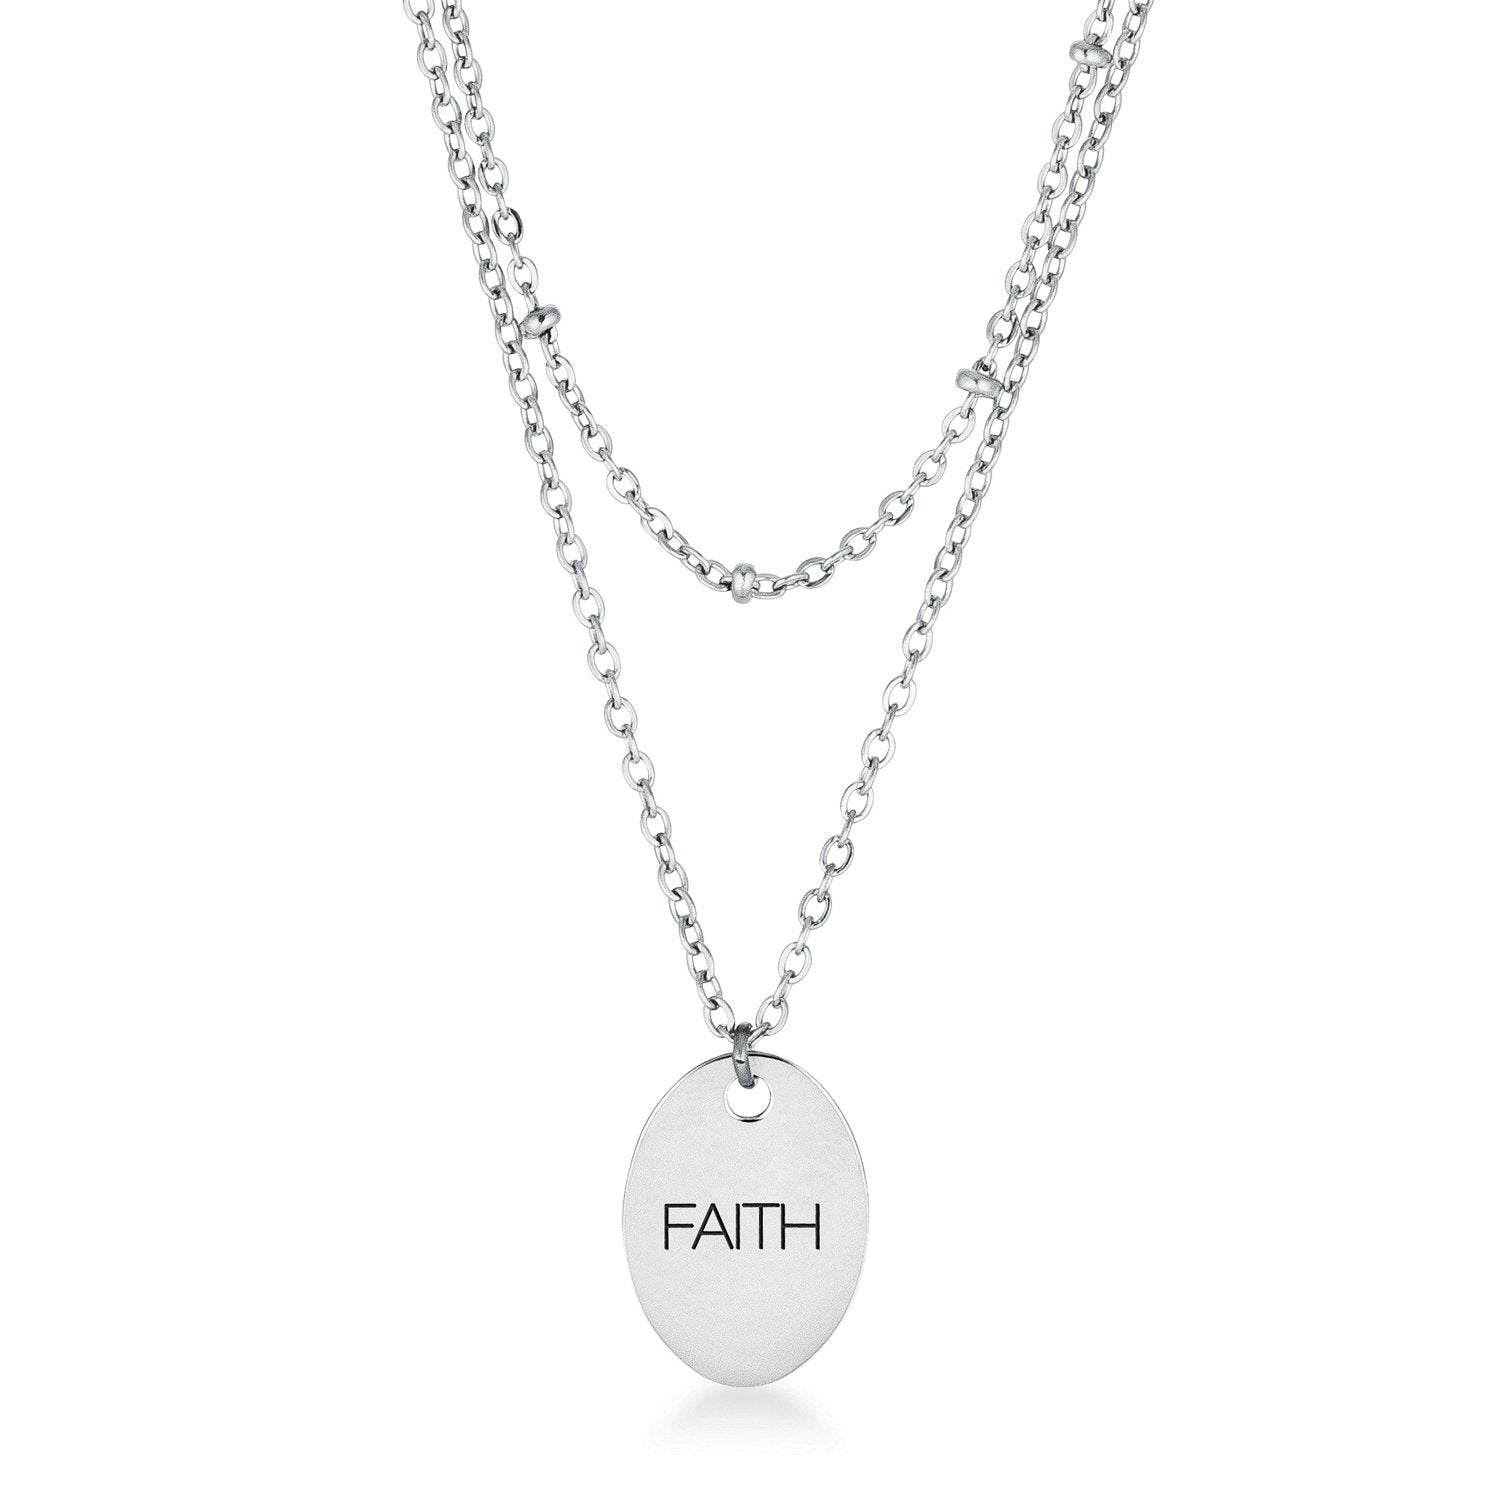 Double Chain FAITH Necklace Stainless Steel